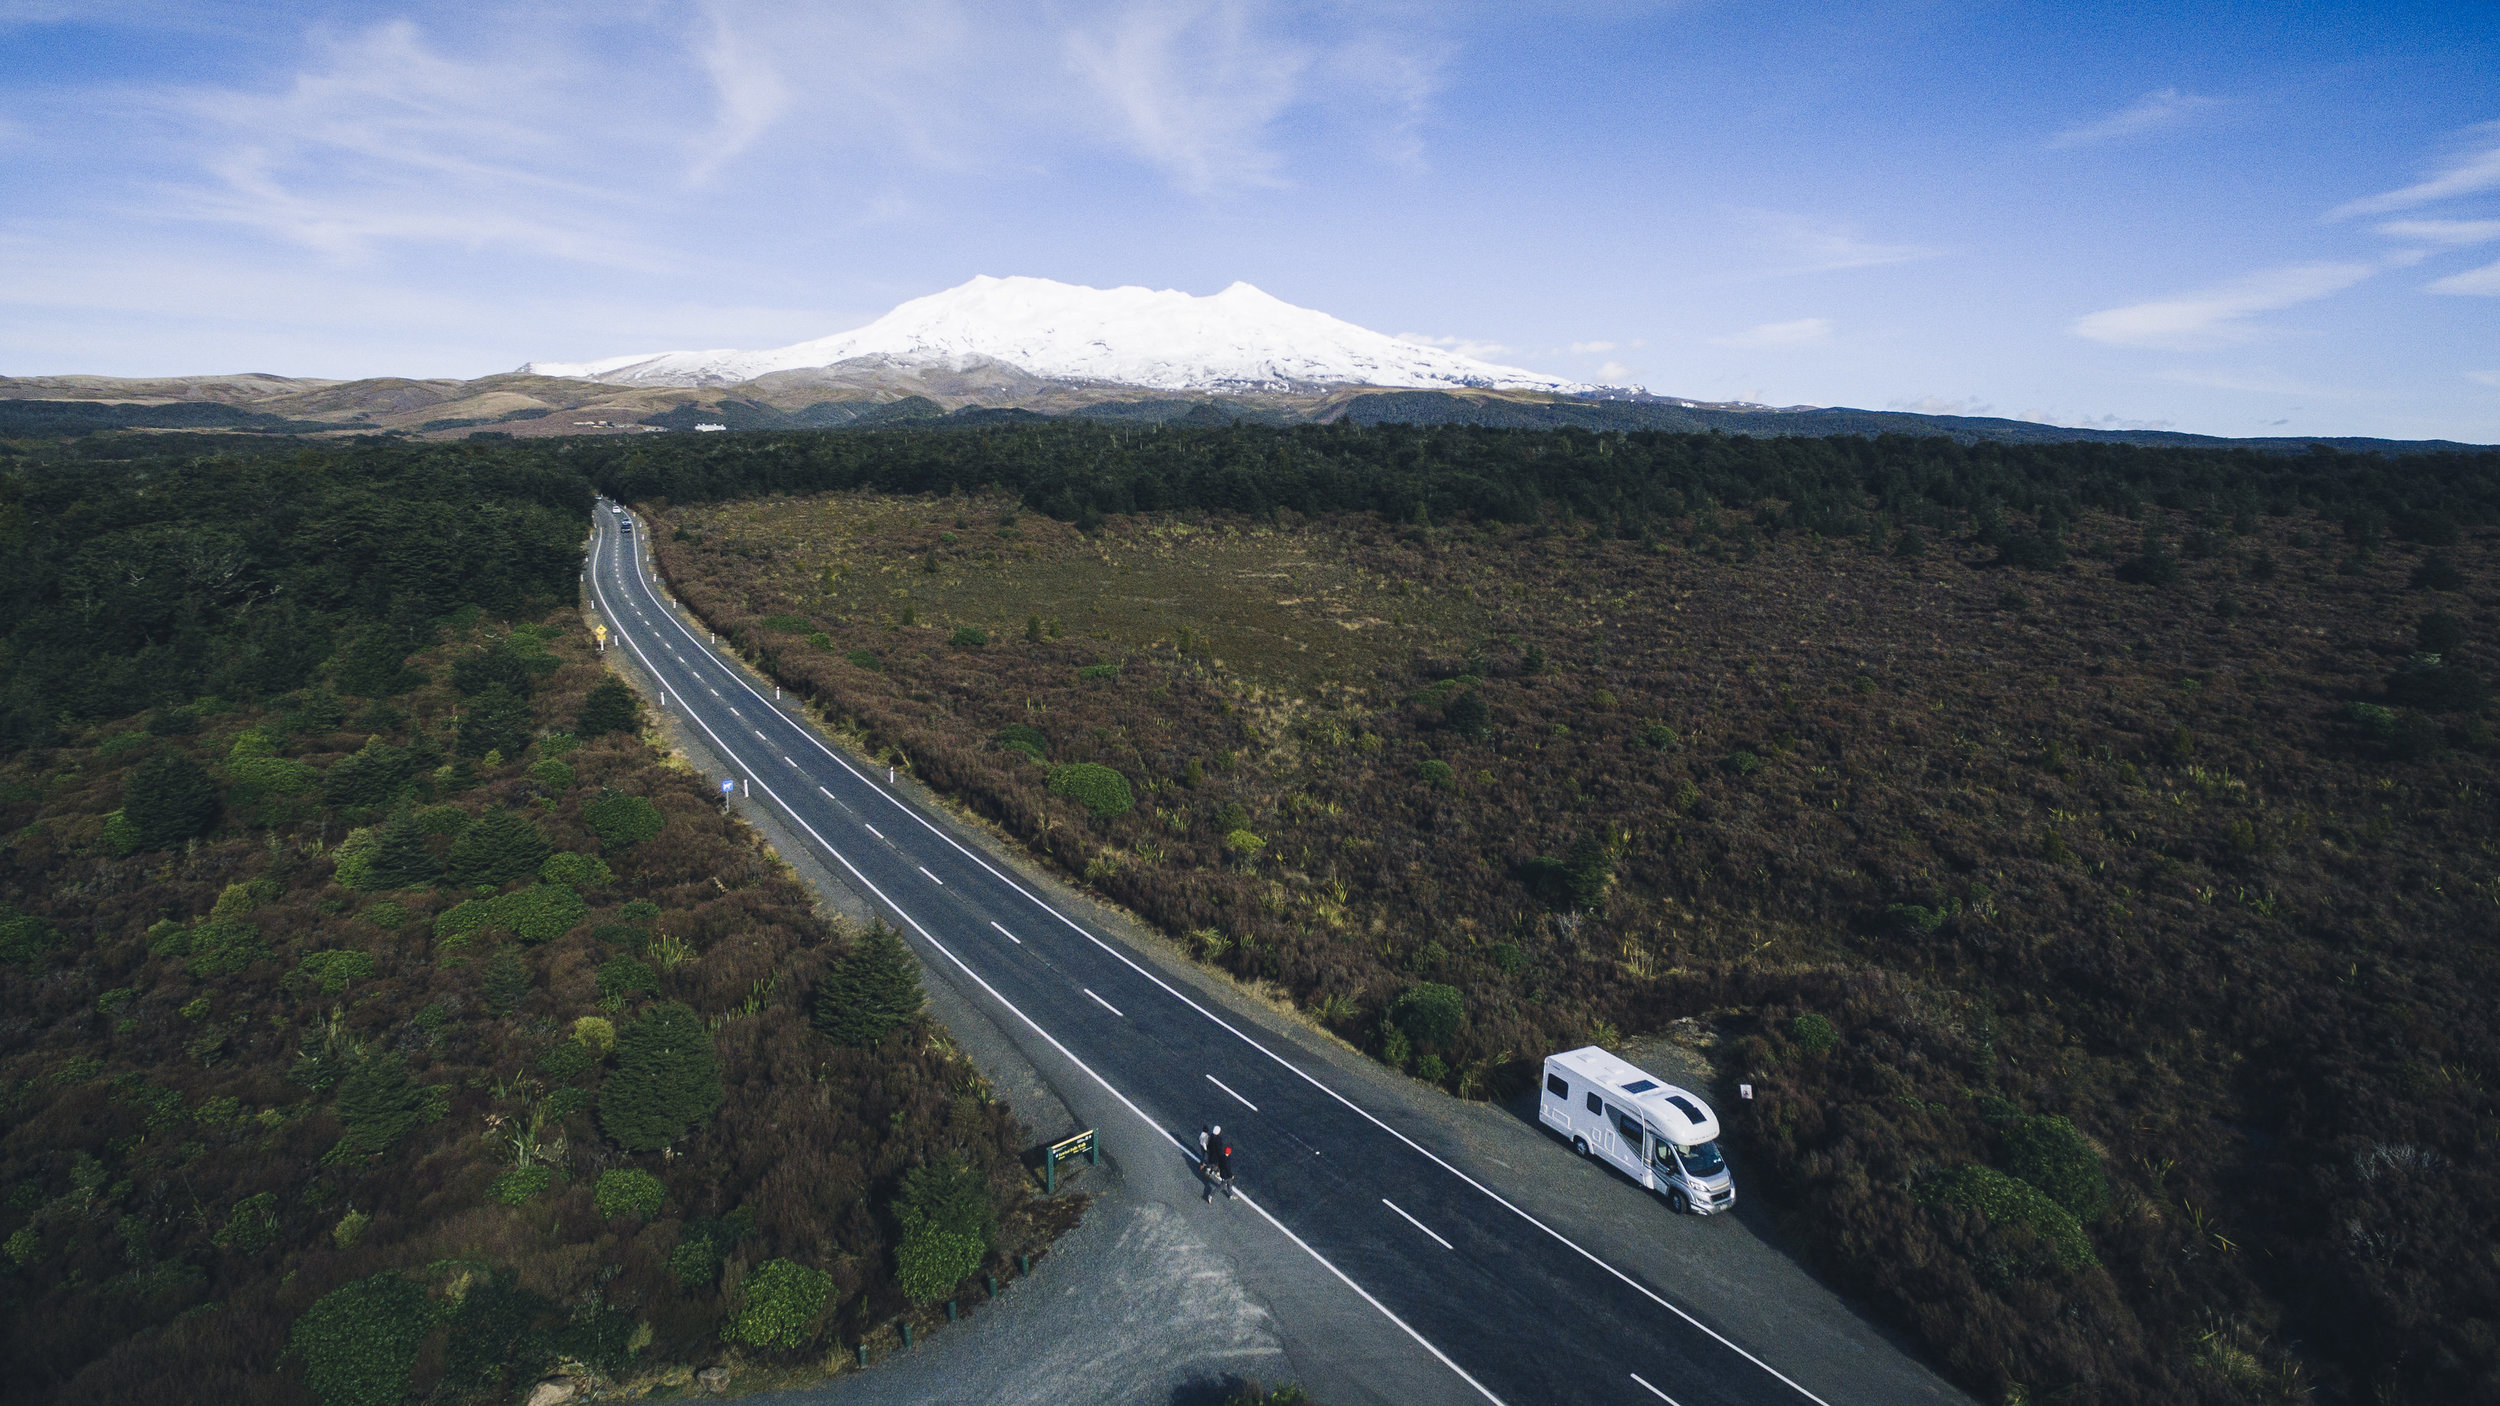 Sunrise Takapu campervan and Mt Ruapehu on the beautiful Volcanic Plateau, where will your Sunrise Holiday take you?